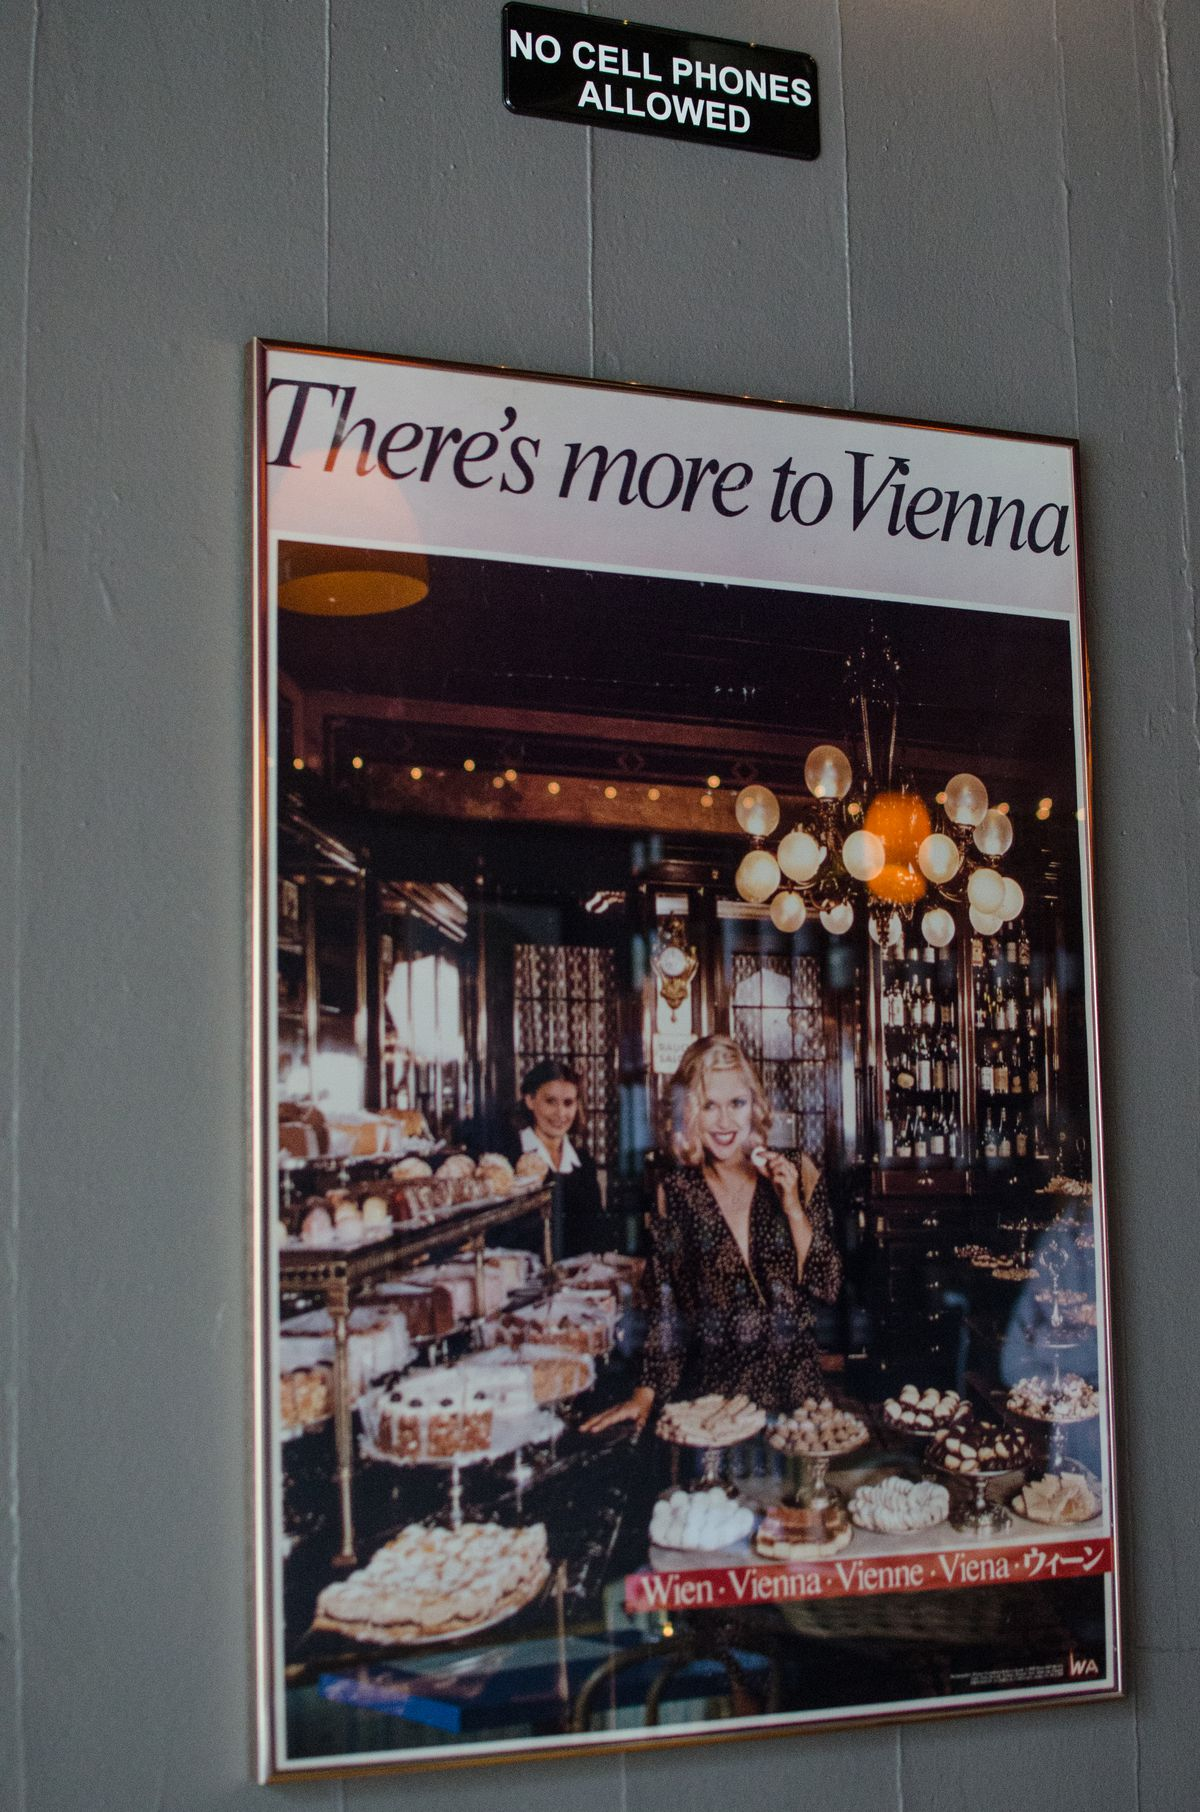 """On a gray wall, there's a small black sign with white lettering that says """"No Cell Phones Allowed."""" Under it is a vintage poster that says """"there's more to Vienna,"""" featuring a blonde woman at a dessert buffet."""